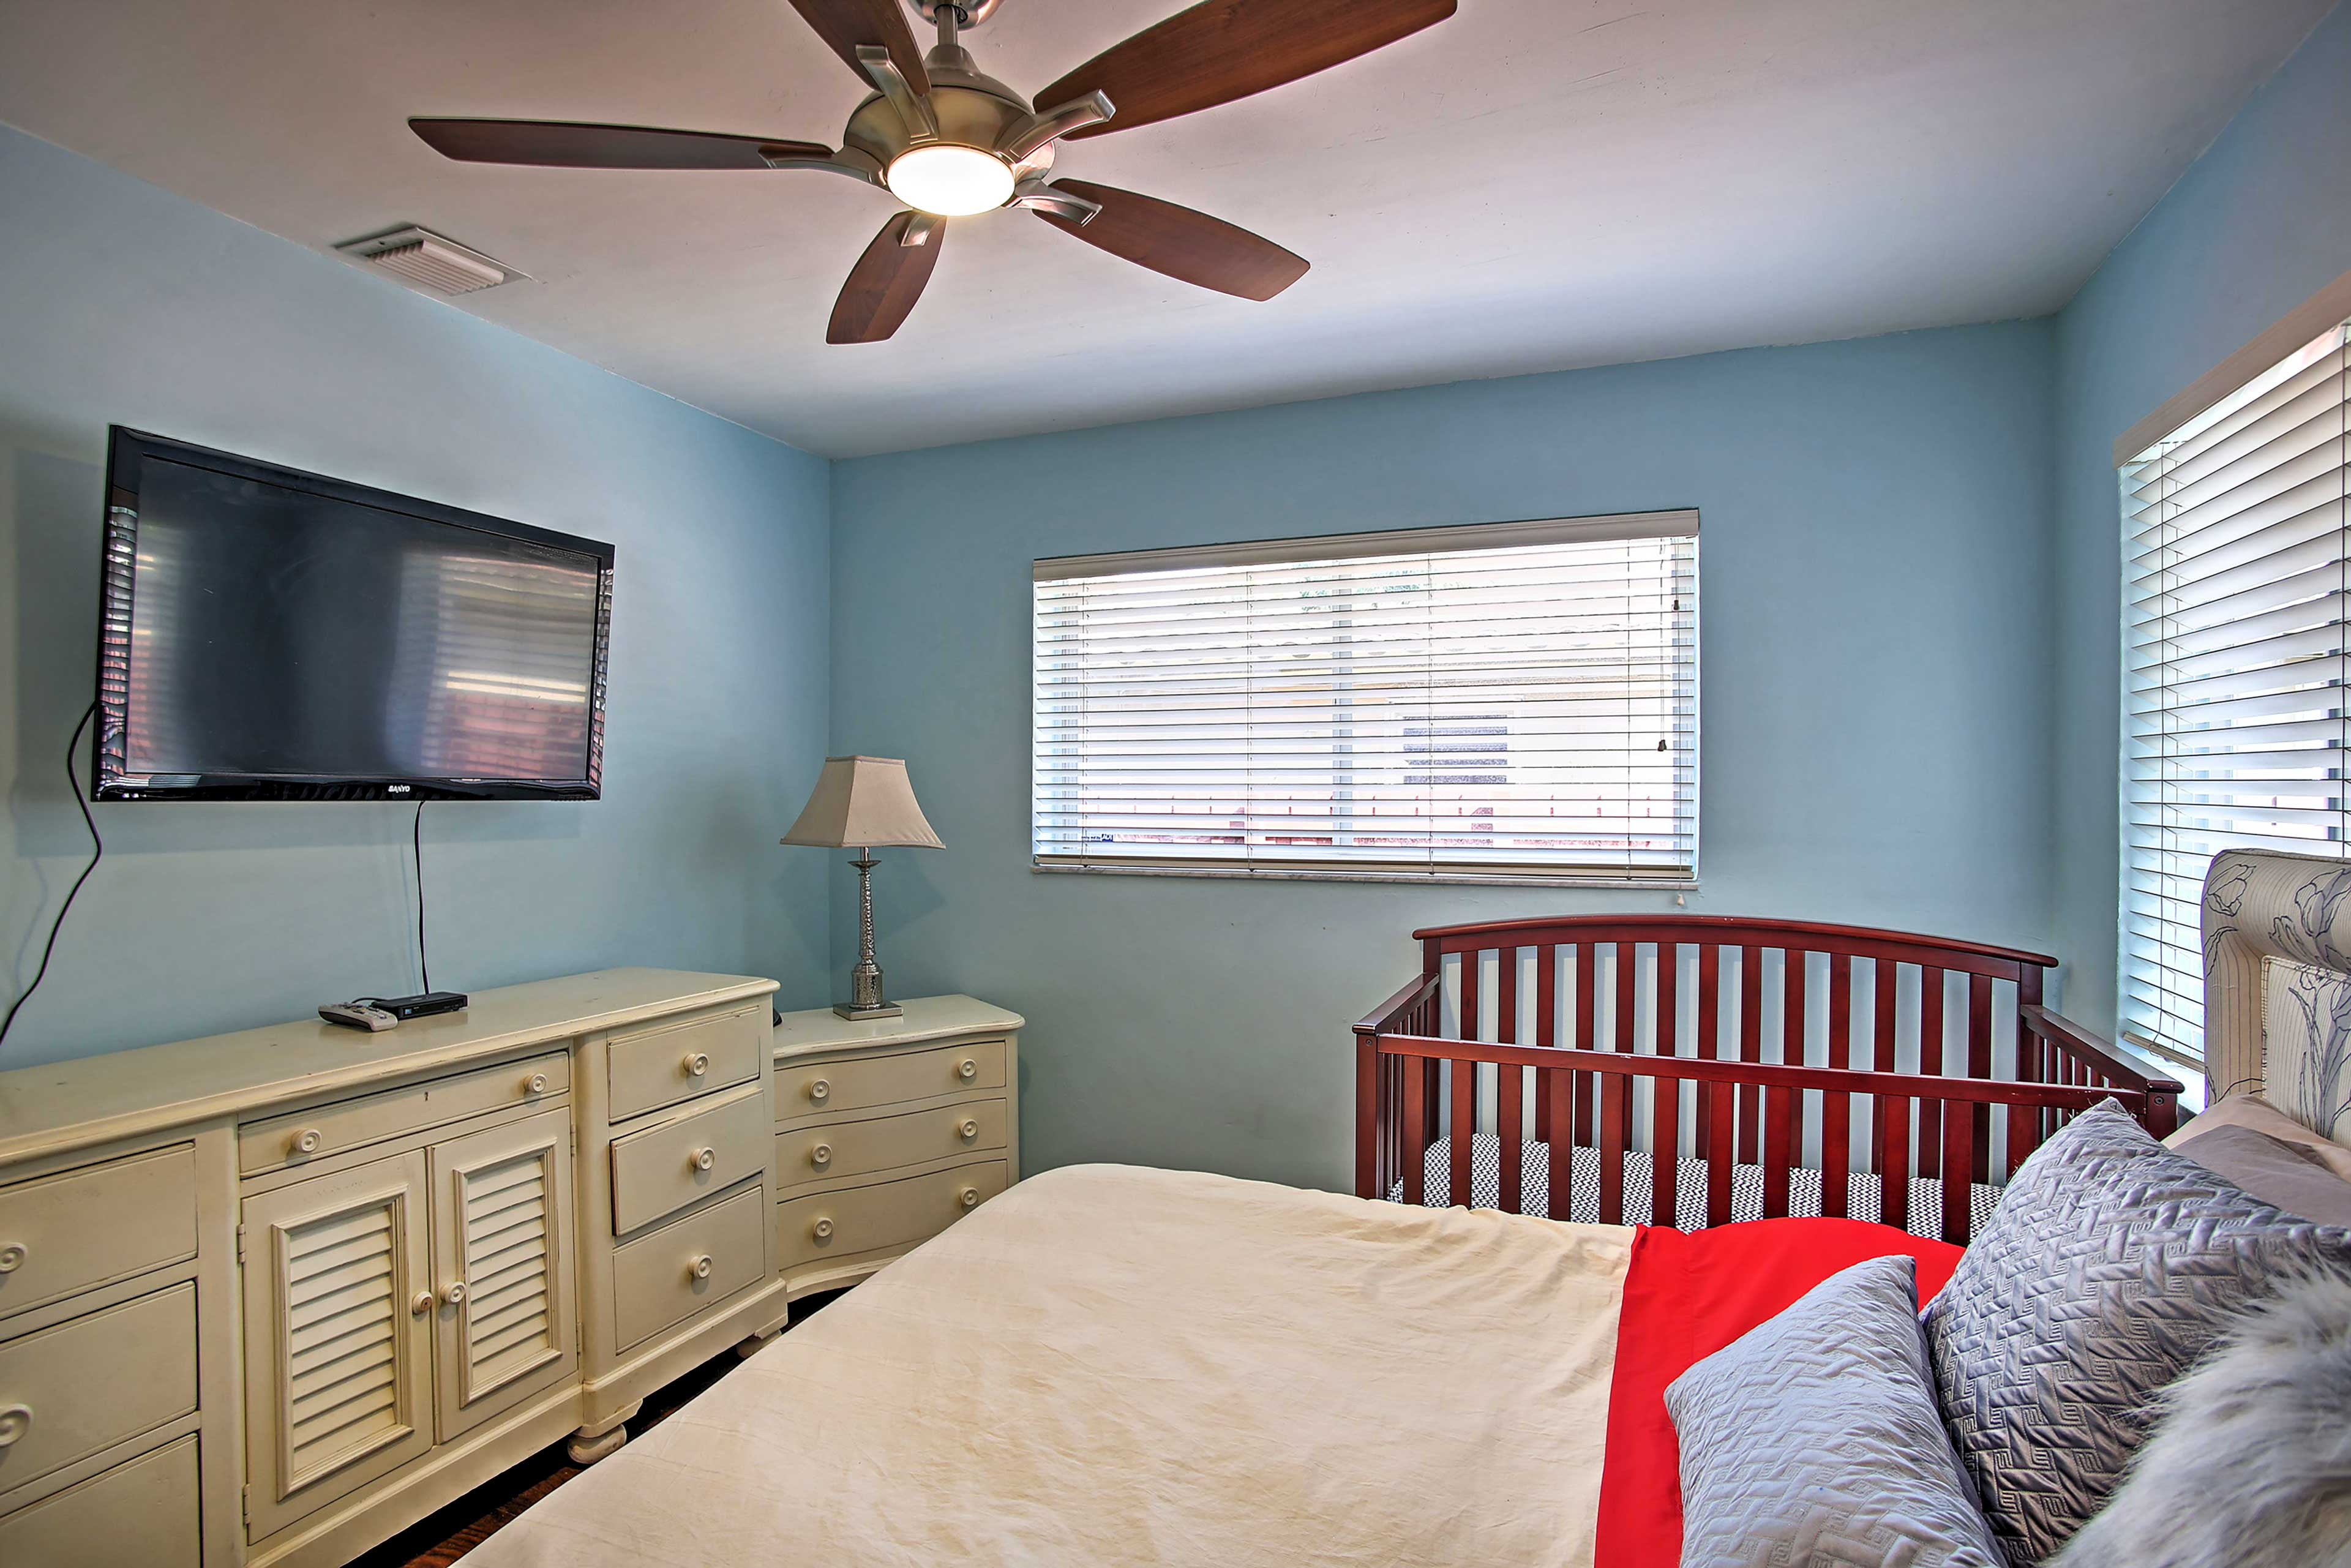 This bedroom has a crib for added convenience.